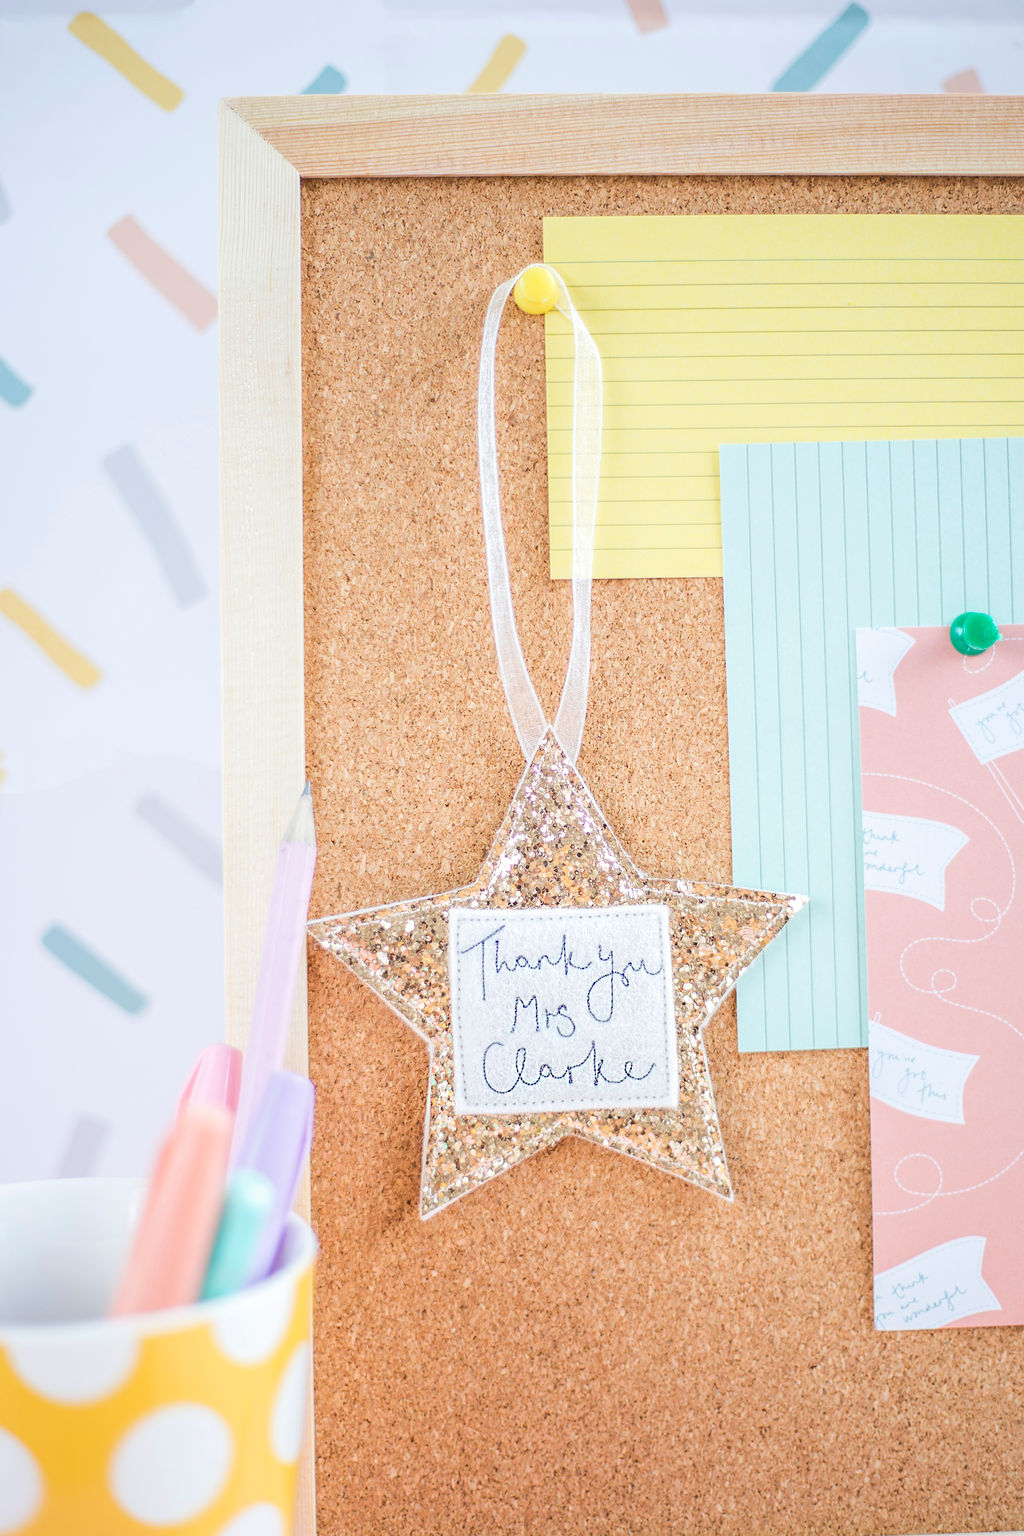 Thank You Teacher Gift – Hanging Sparkly Star Decorations